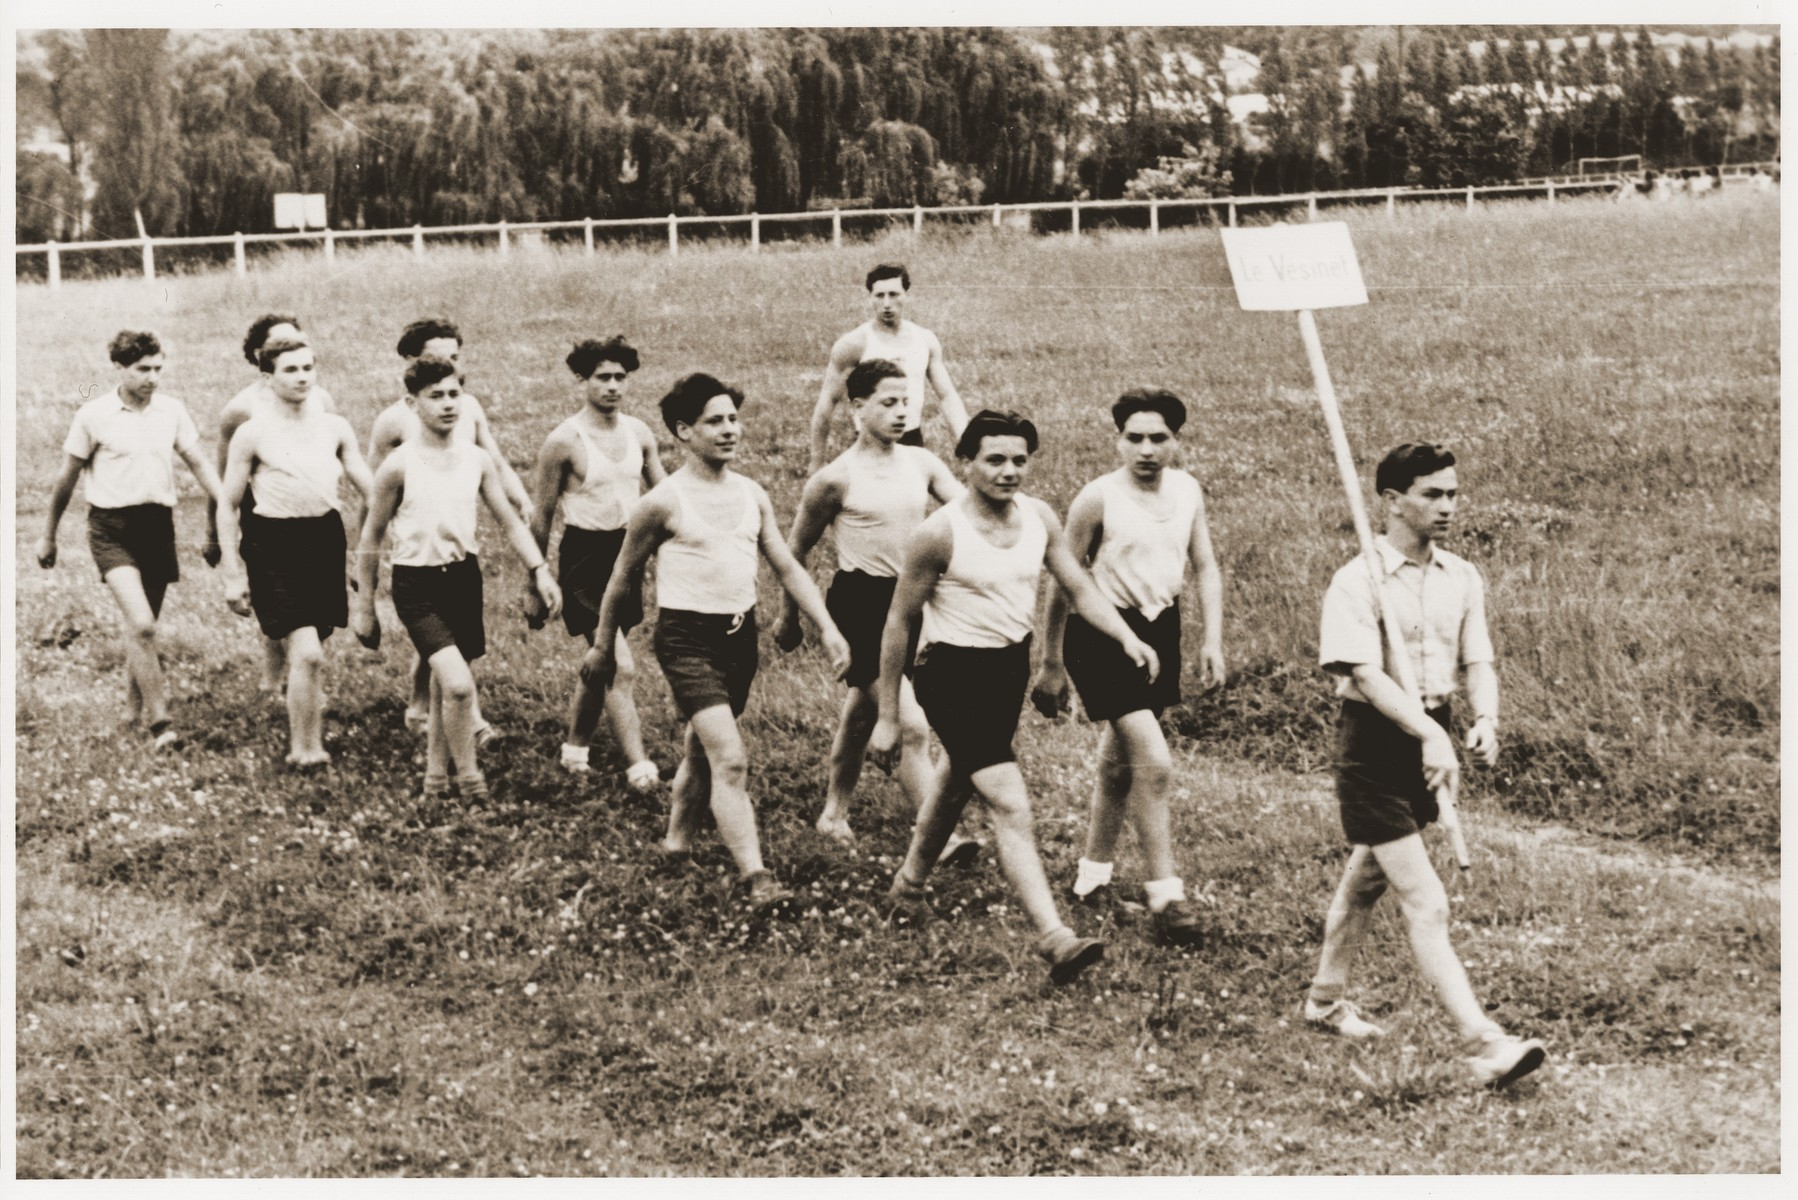 Jewish youth from the Le Vésinet children's home march down a grassy track during a sports meet.  Pictured from left to right are Theodo (Bubi) Lowy, Jozef Szwarcberg, Romek Wajsman, Leon Friedman, Hershel Unger, Edgar ?, Jakob Kapelusz and Beniek Mrowka.